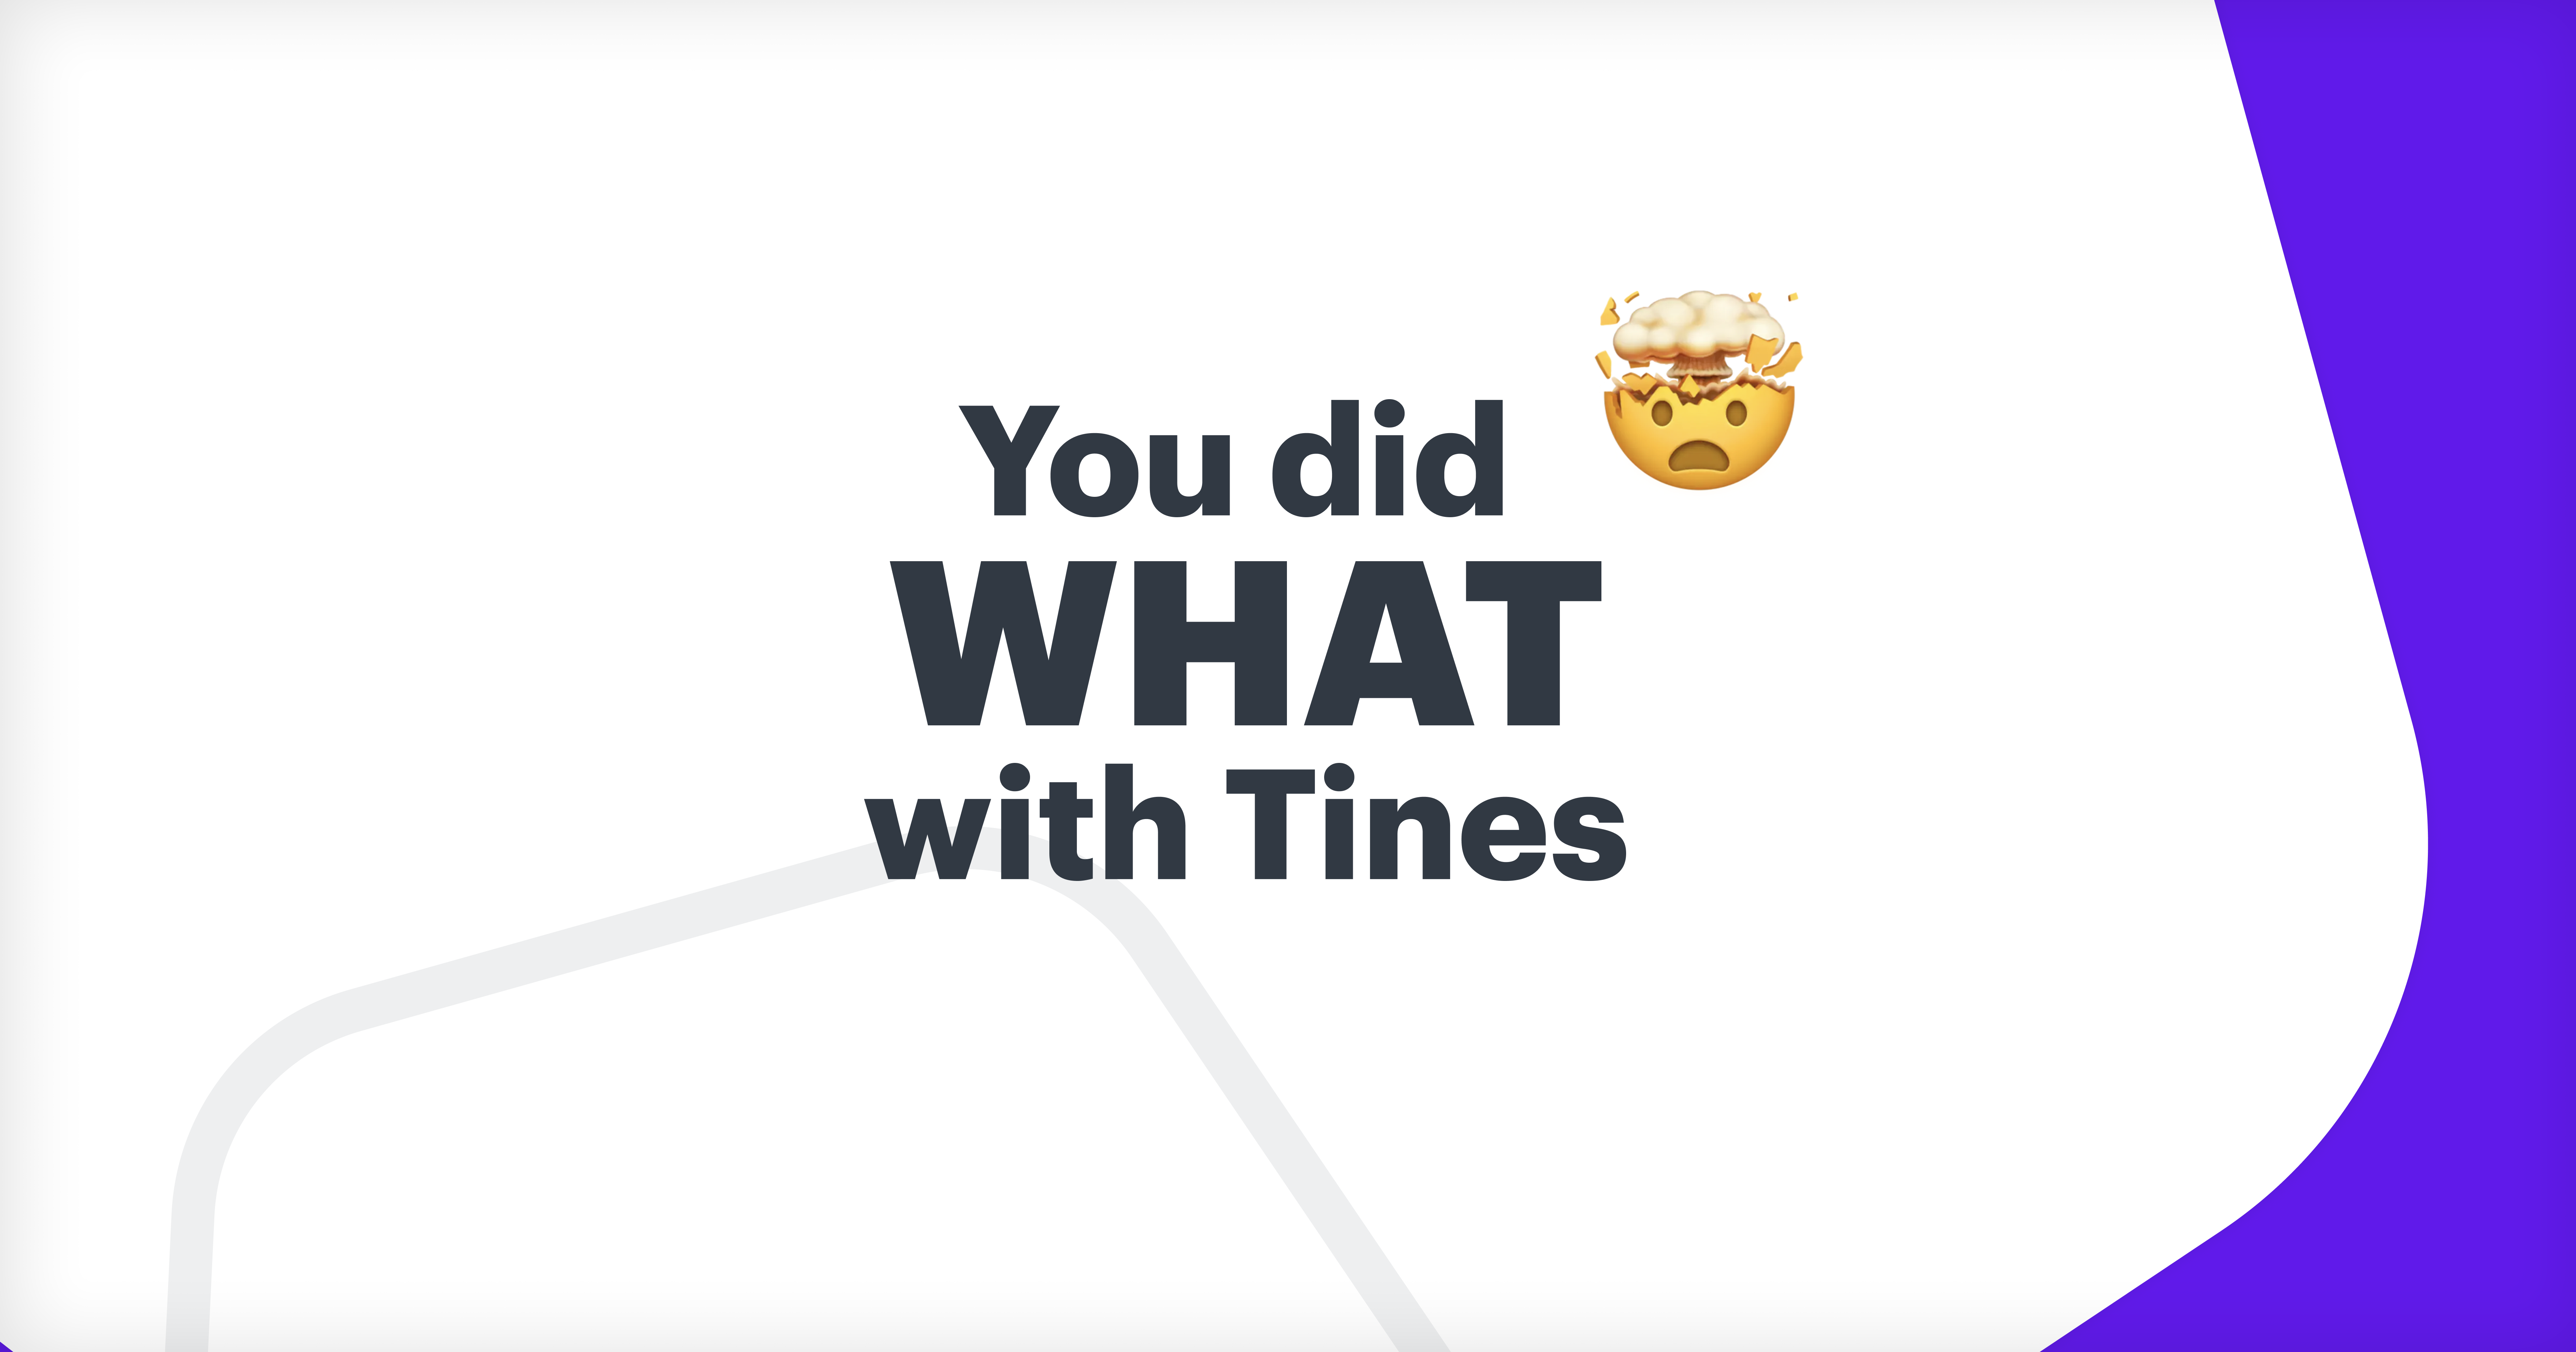 You did What with Tines?